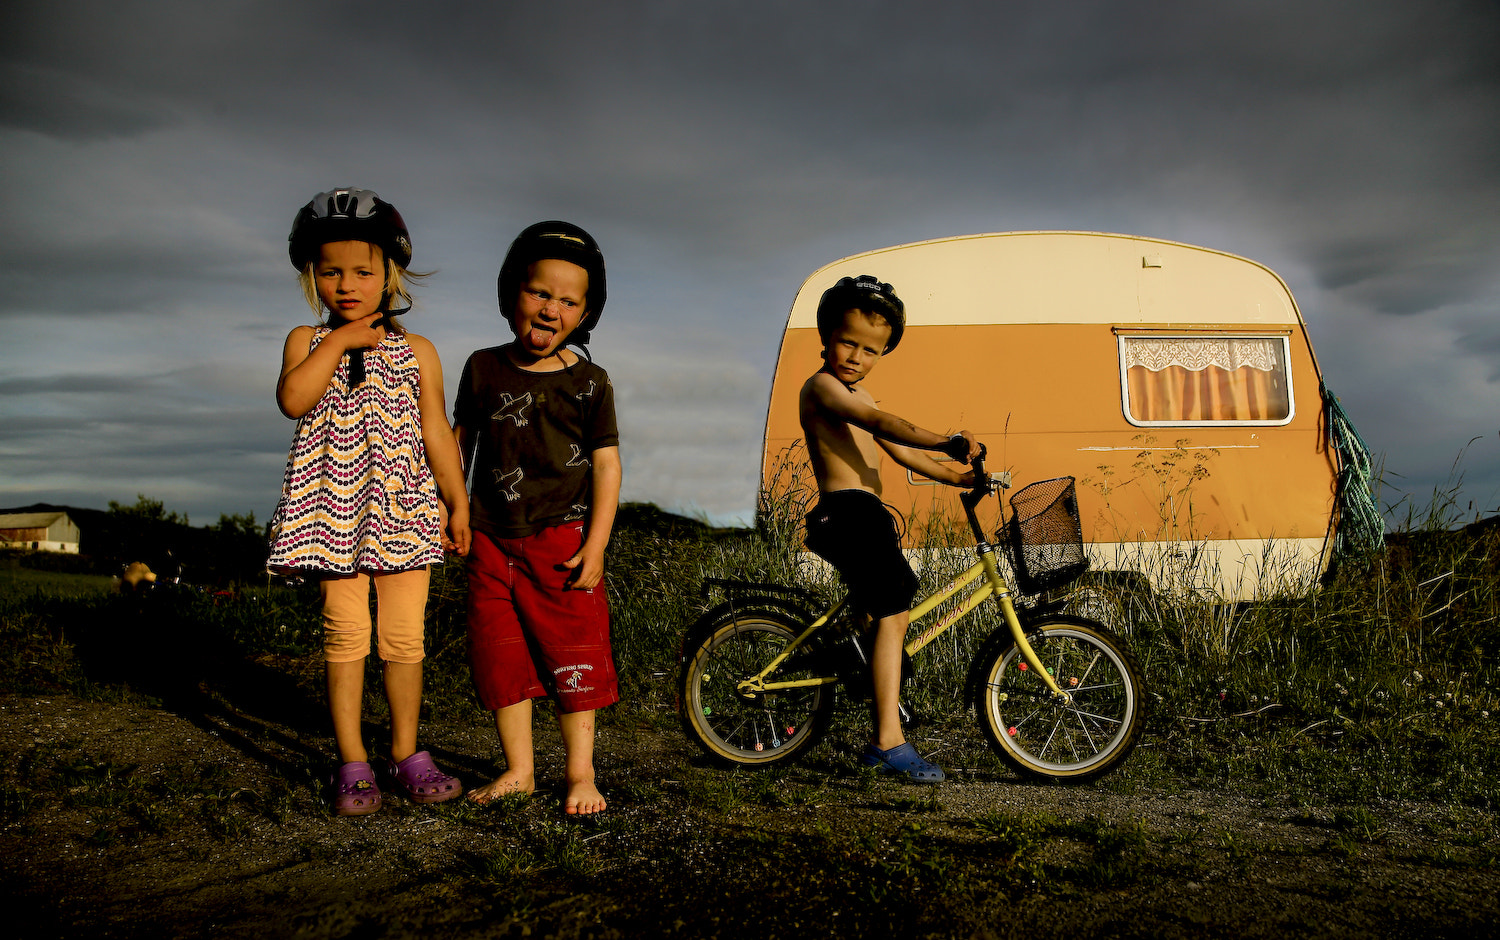 Photograph Camping kids by audun nygaard on 500px